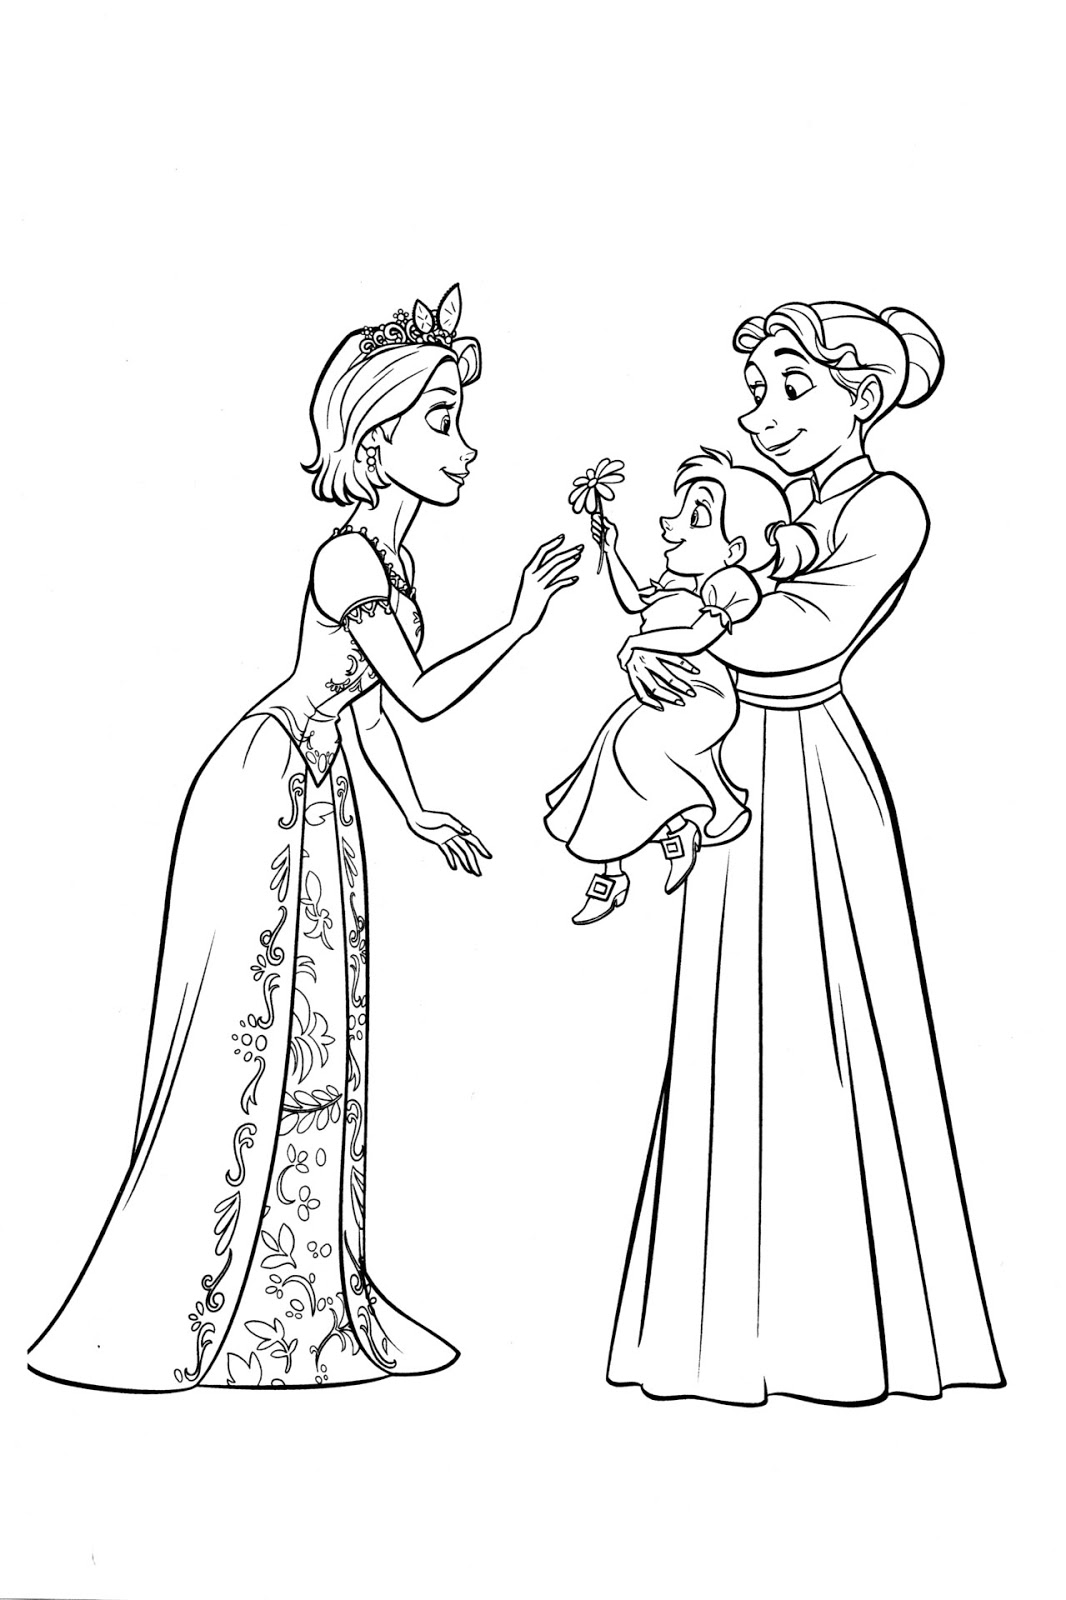 Coloring pictures rapunzel - Free Coloring Pages Rapunzel Rapunzel Free Coloring Pages